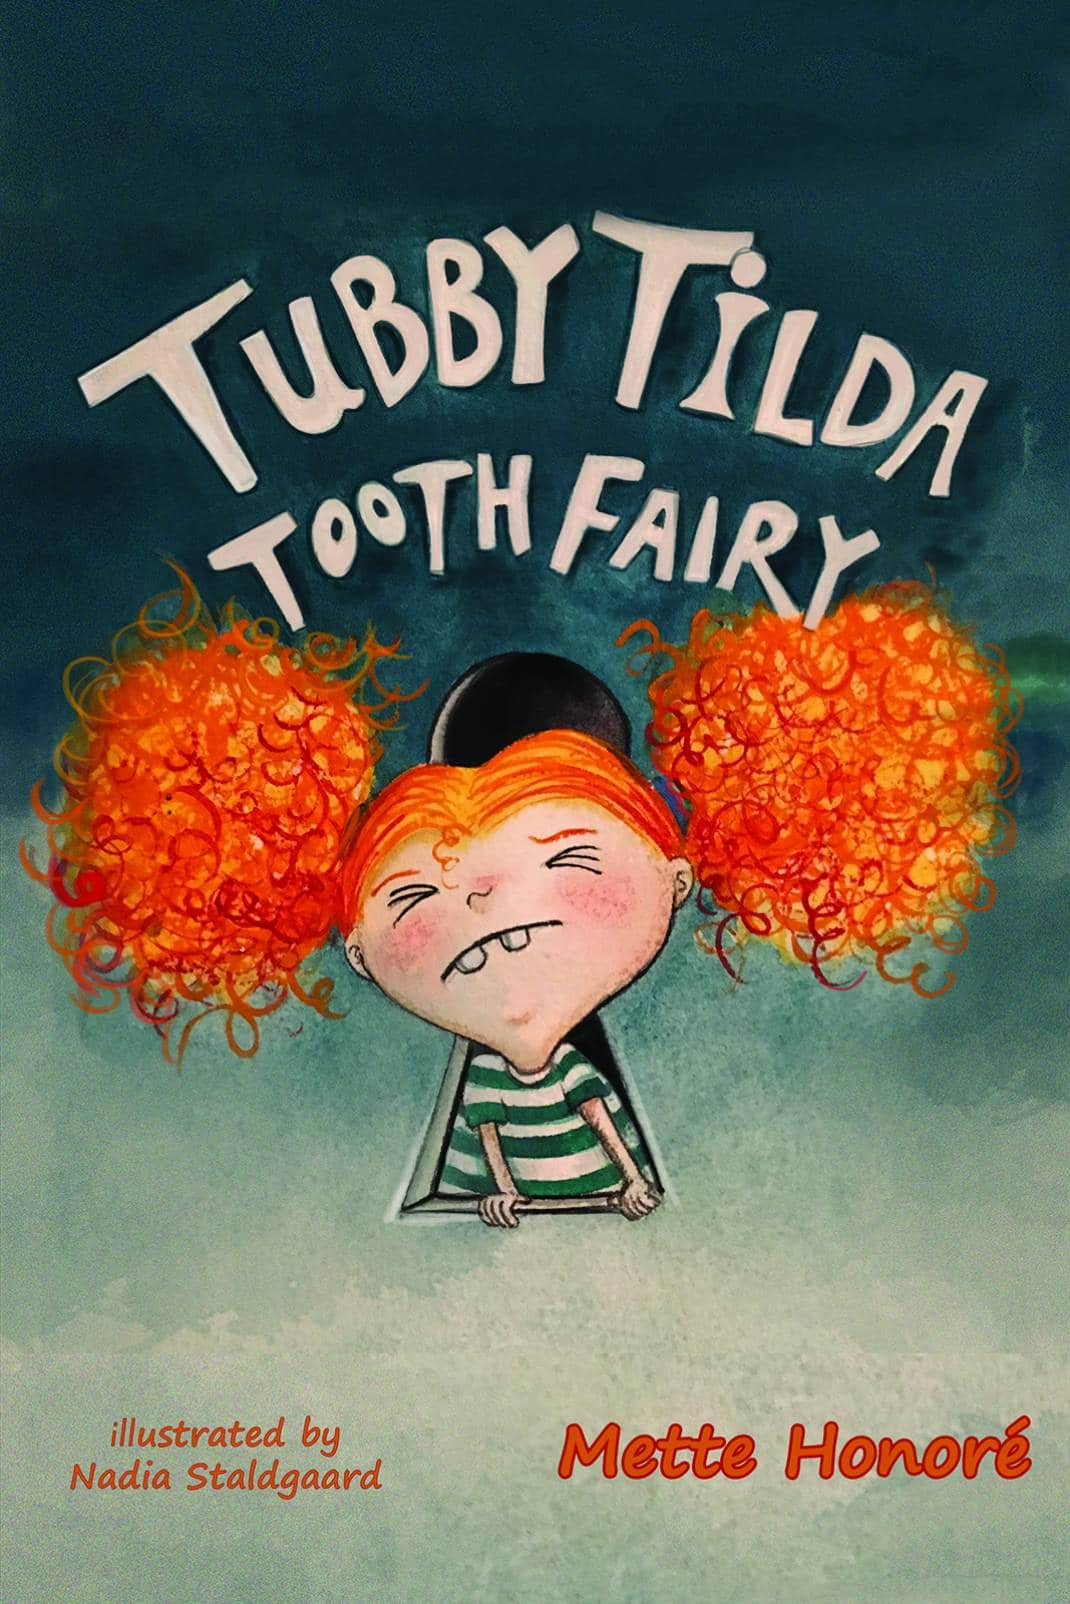 Tubby Tilda Tooth Fairy. She is not your average girl fairy. She is an ill-tempered, funny, and red-headed young feminist. If you keep an eye open, she will try to get you to fall asleep. She is not good at waiting, so you better not be awake when she comes around.